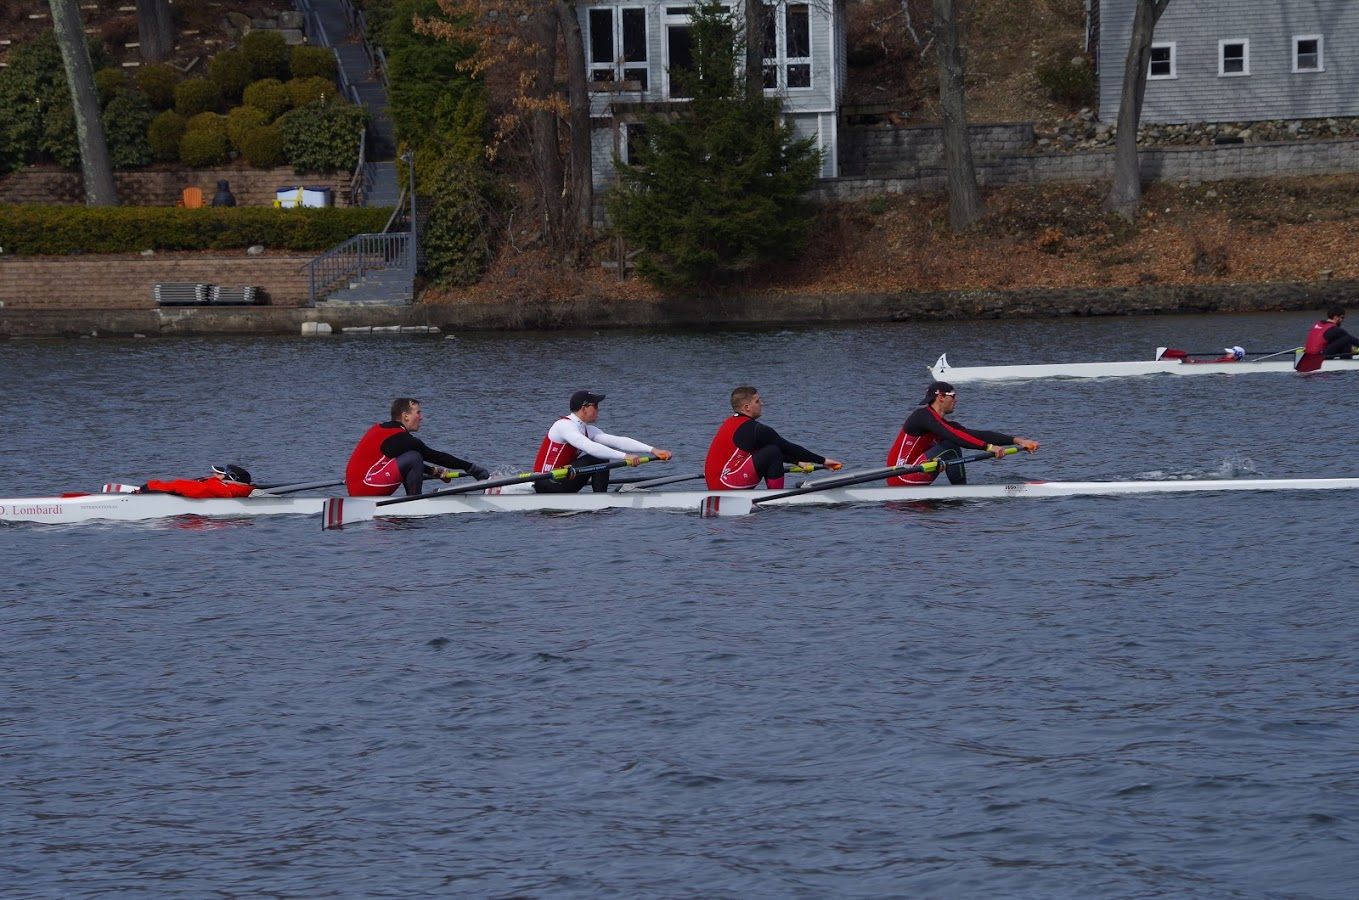 The men's rowing team practices on the lake wearing red and white gear.